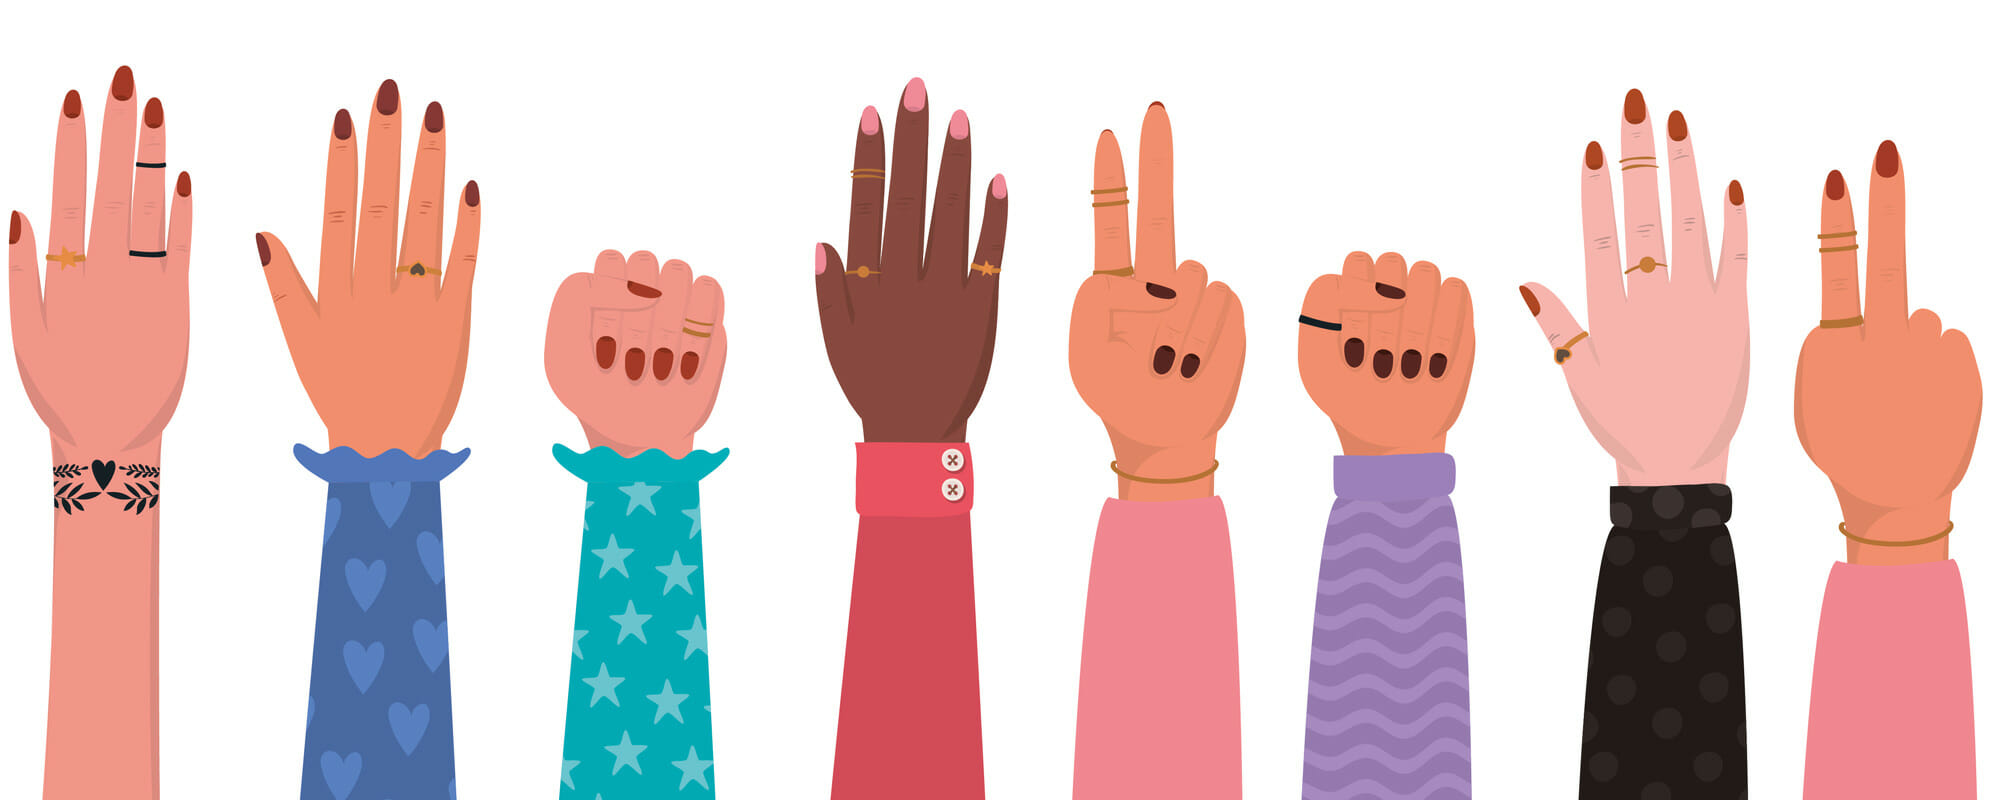 Women's hands in the air